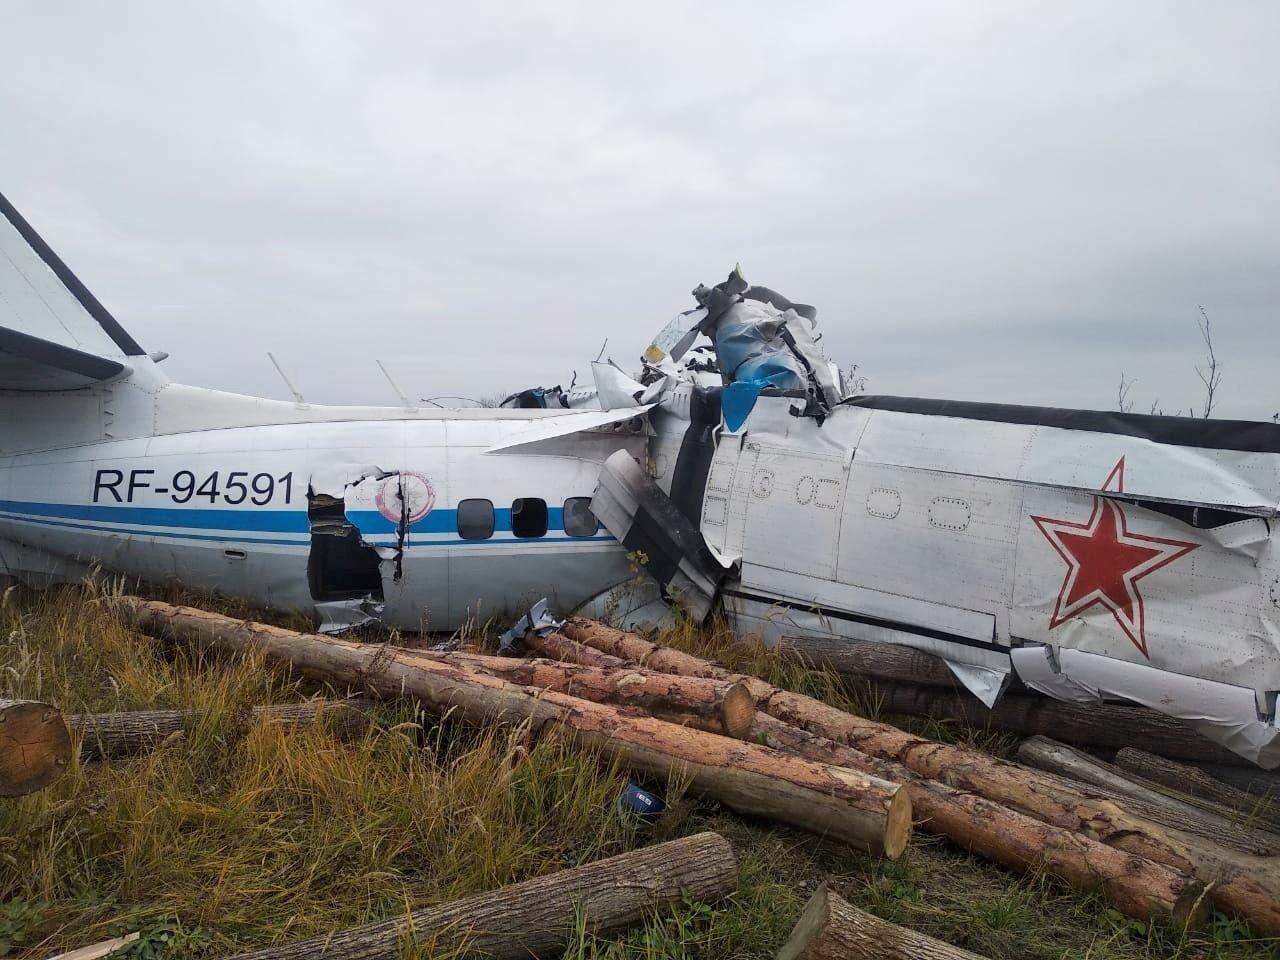 The wreckage of the L-410 plane is seen at the crash site near the town of Menzelinsk in Tatarstan republic, Russia, Oct. 10, 2021. (Russia's Emergencies Ministry via Reuters)